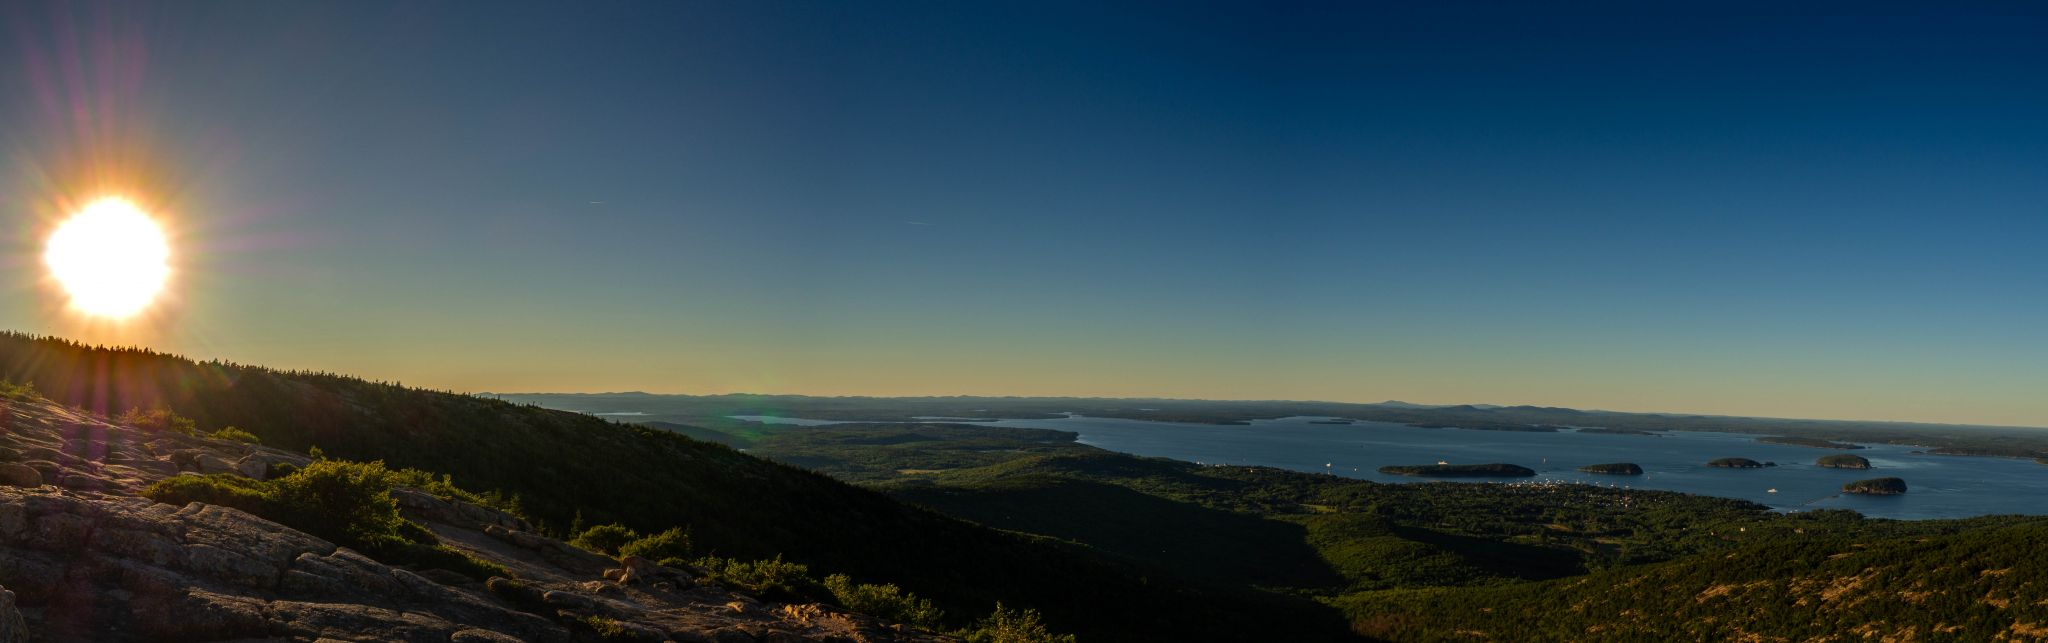 Cadillac mountain (Acadia national park), USA